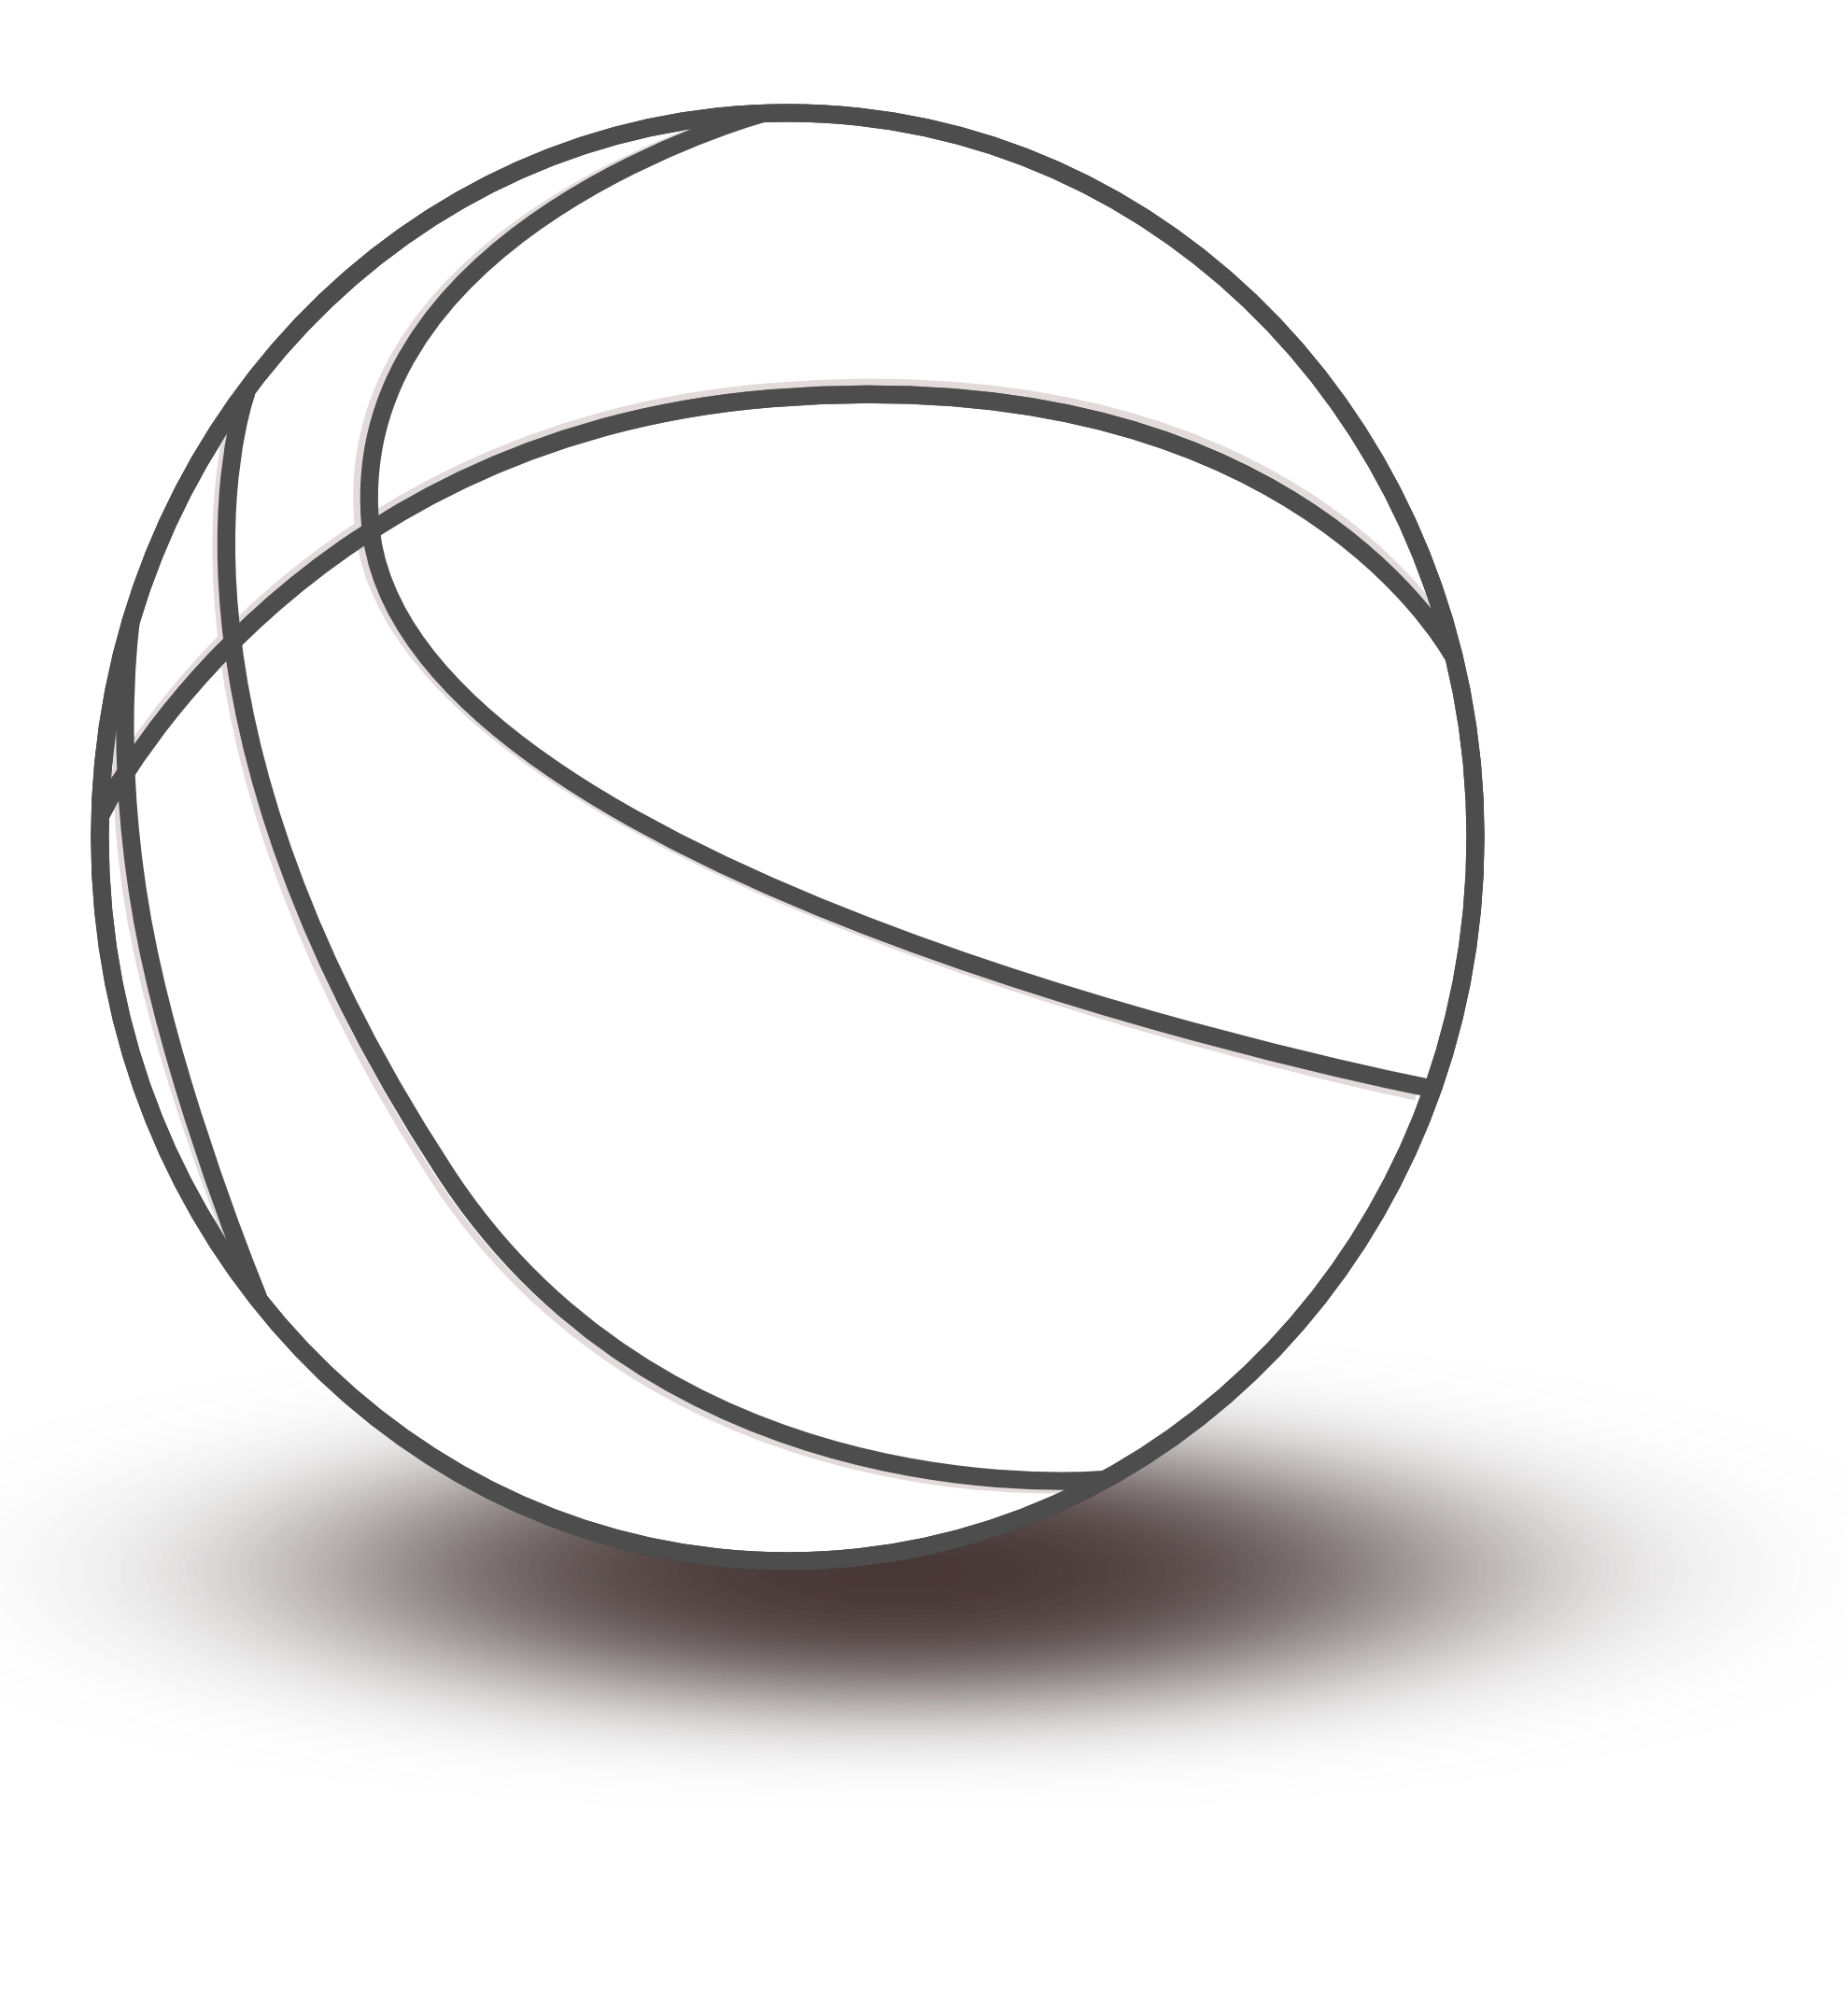 Jpeg basketball clipart black and white image free download Basketball Ball Clipart Black And White | Clipart Panda - Free ... image free download